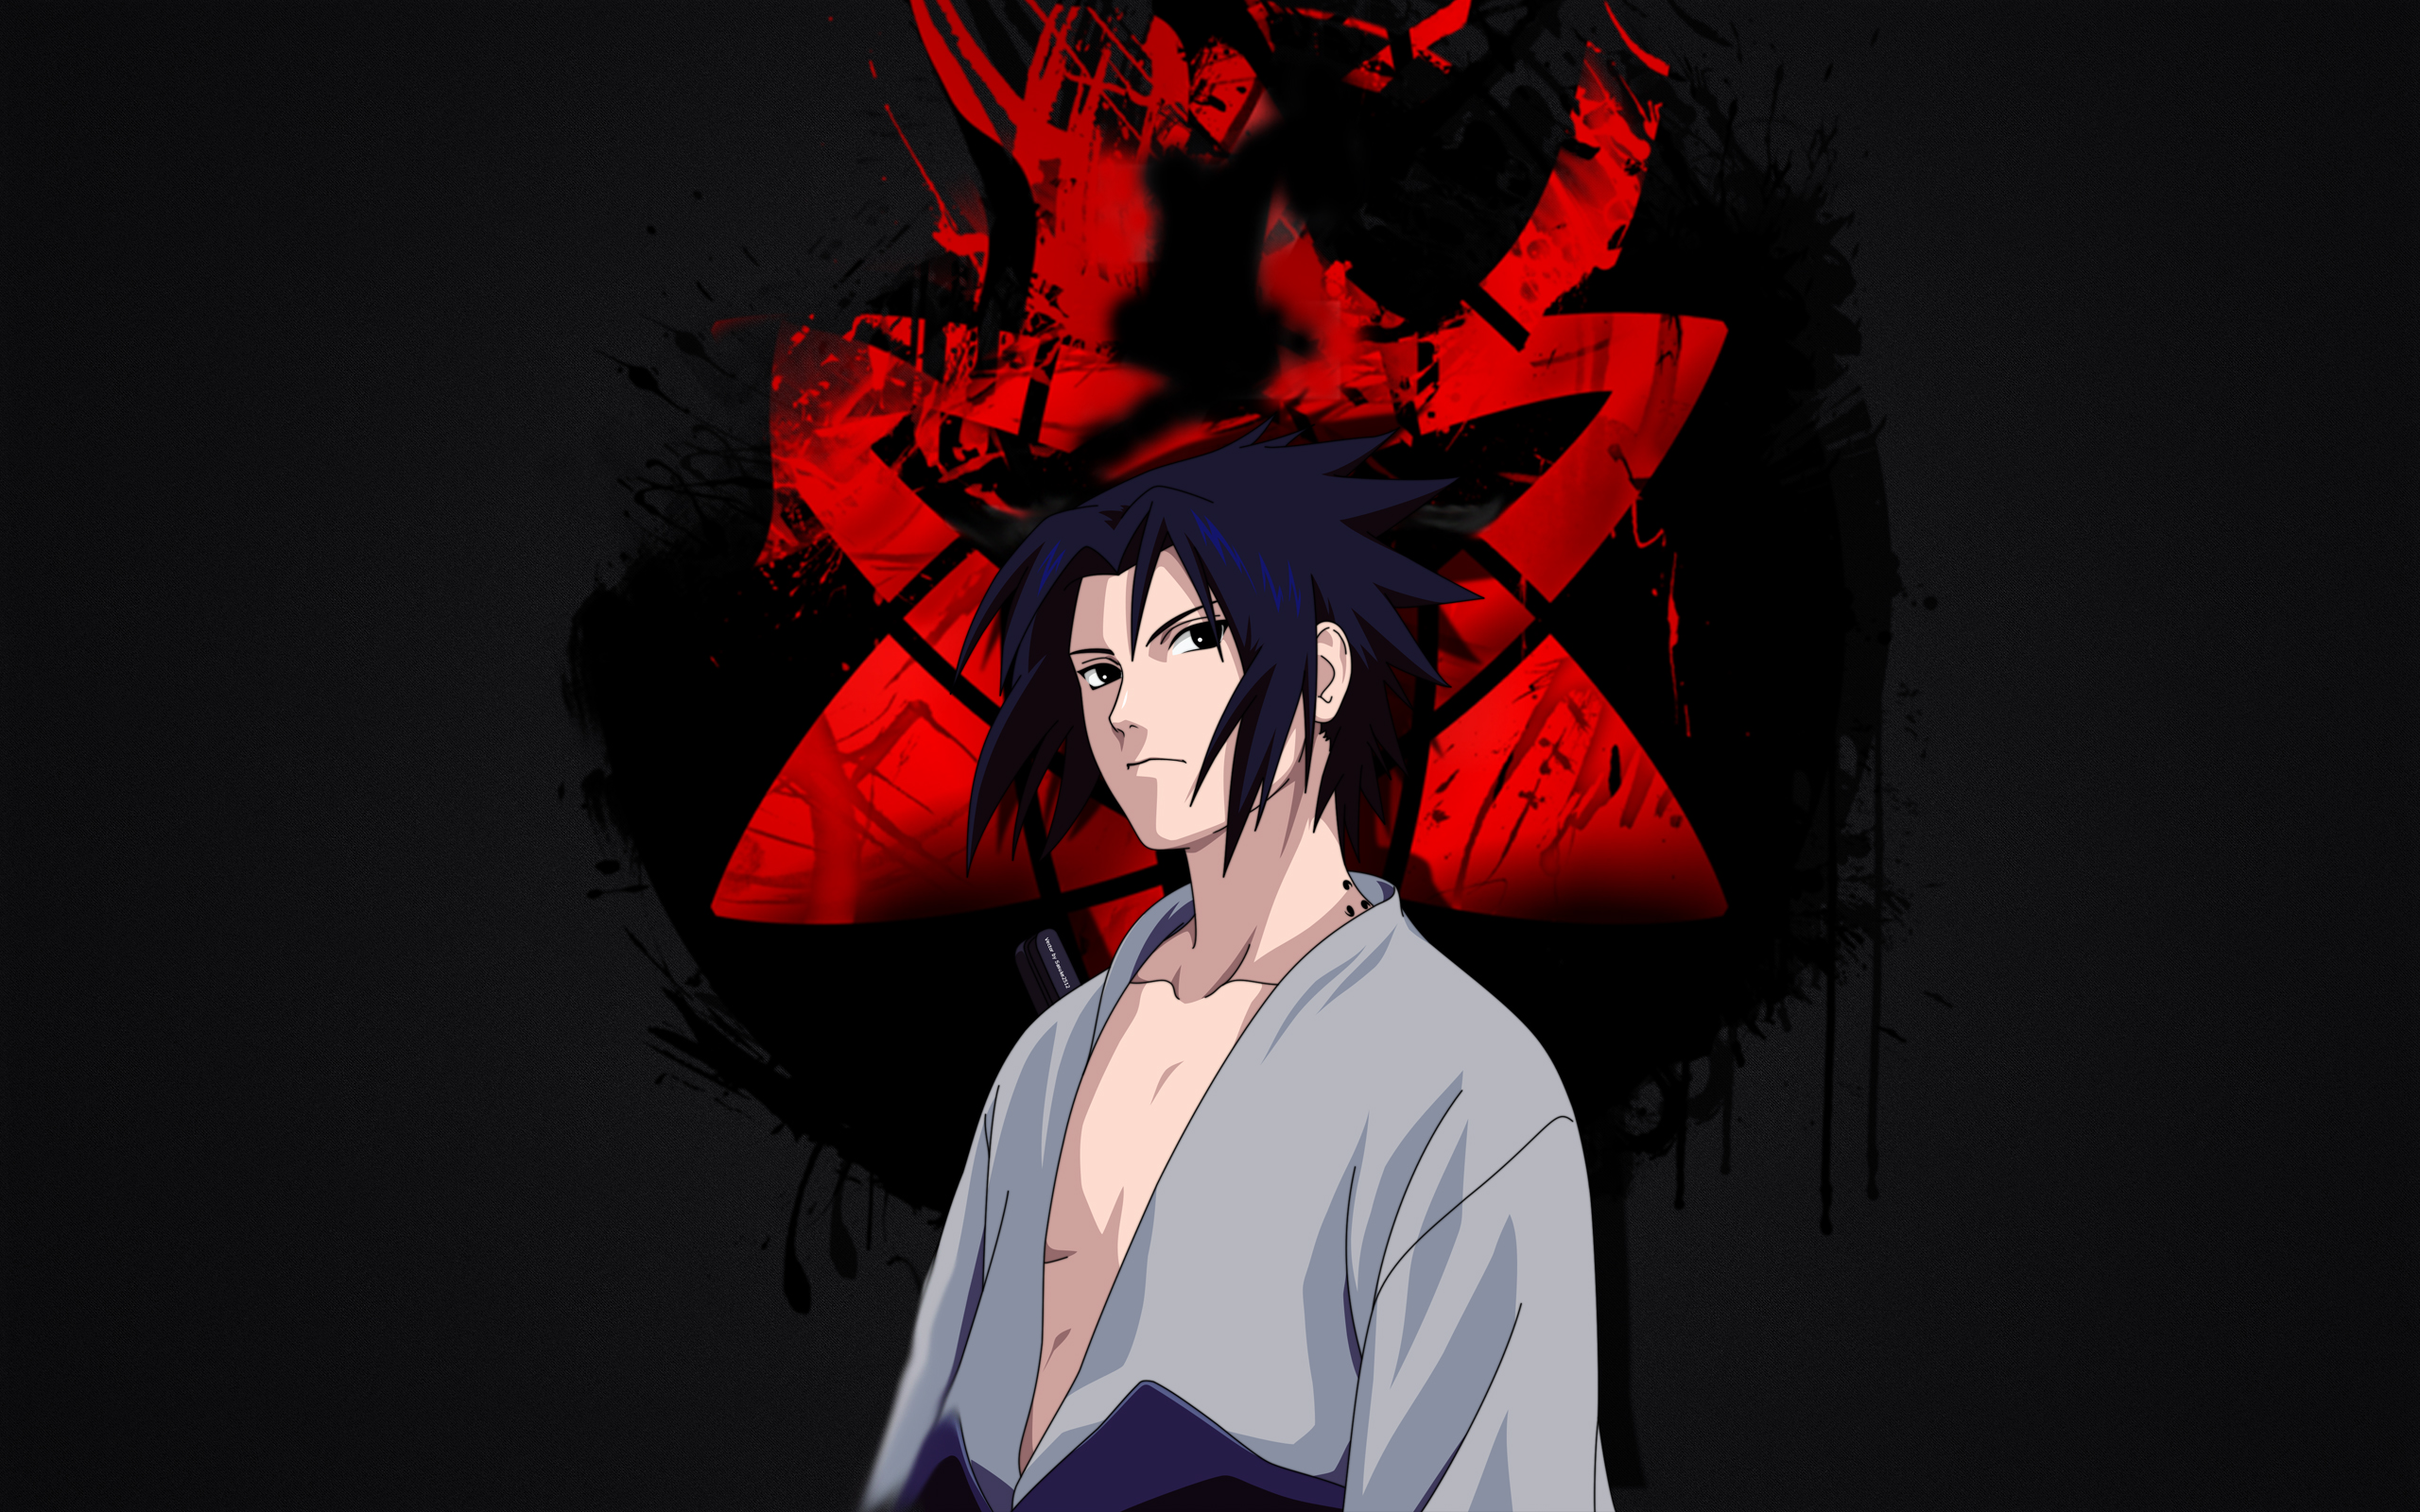 HD Wallpaper Anime Naruto Sasuke Uchiha Sharingan